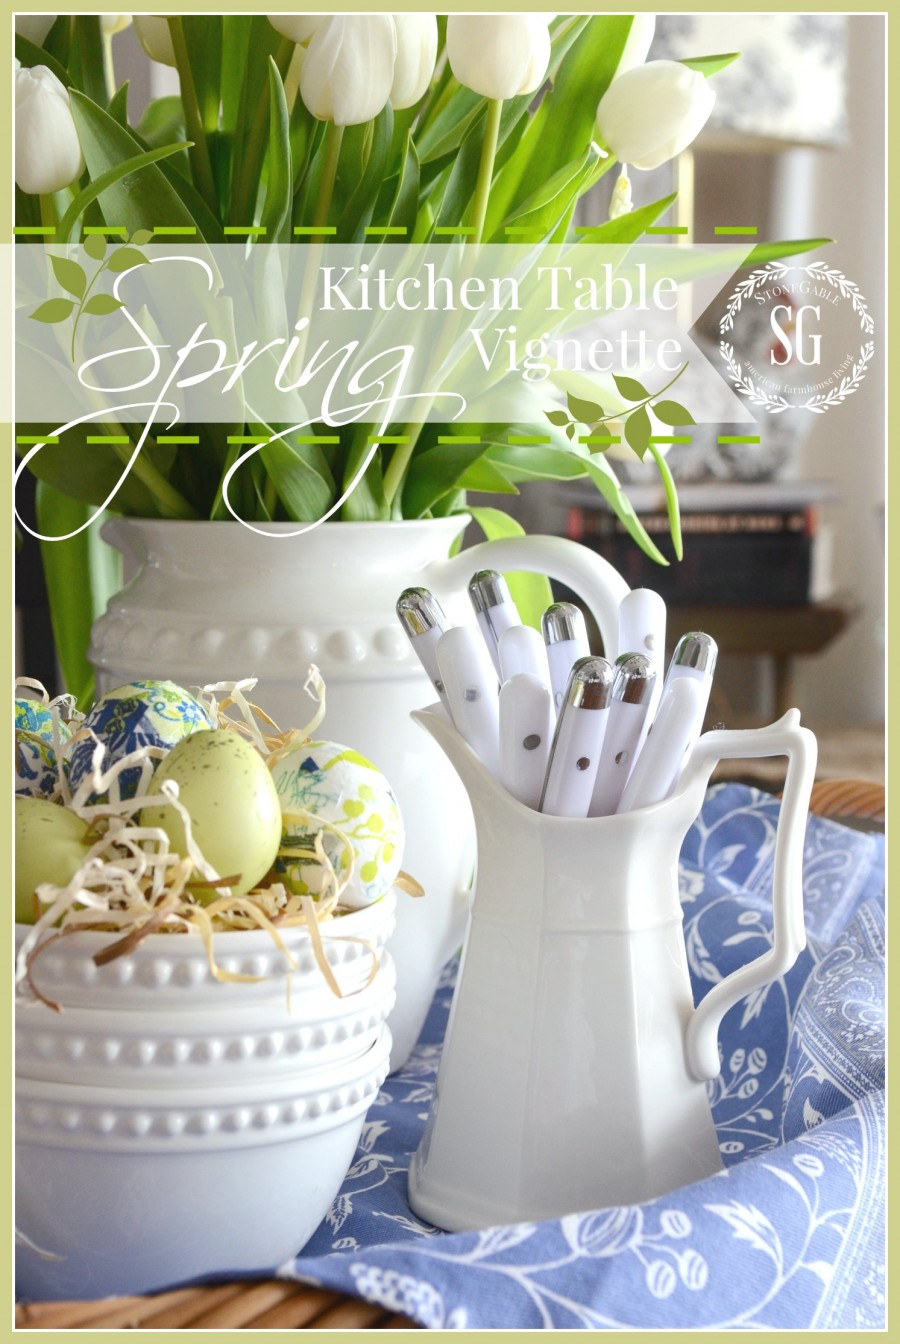 Spring Kitche Table Vignette Stonegable